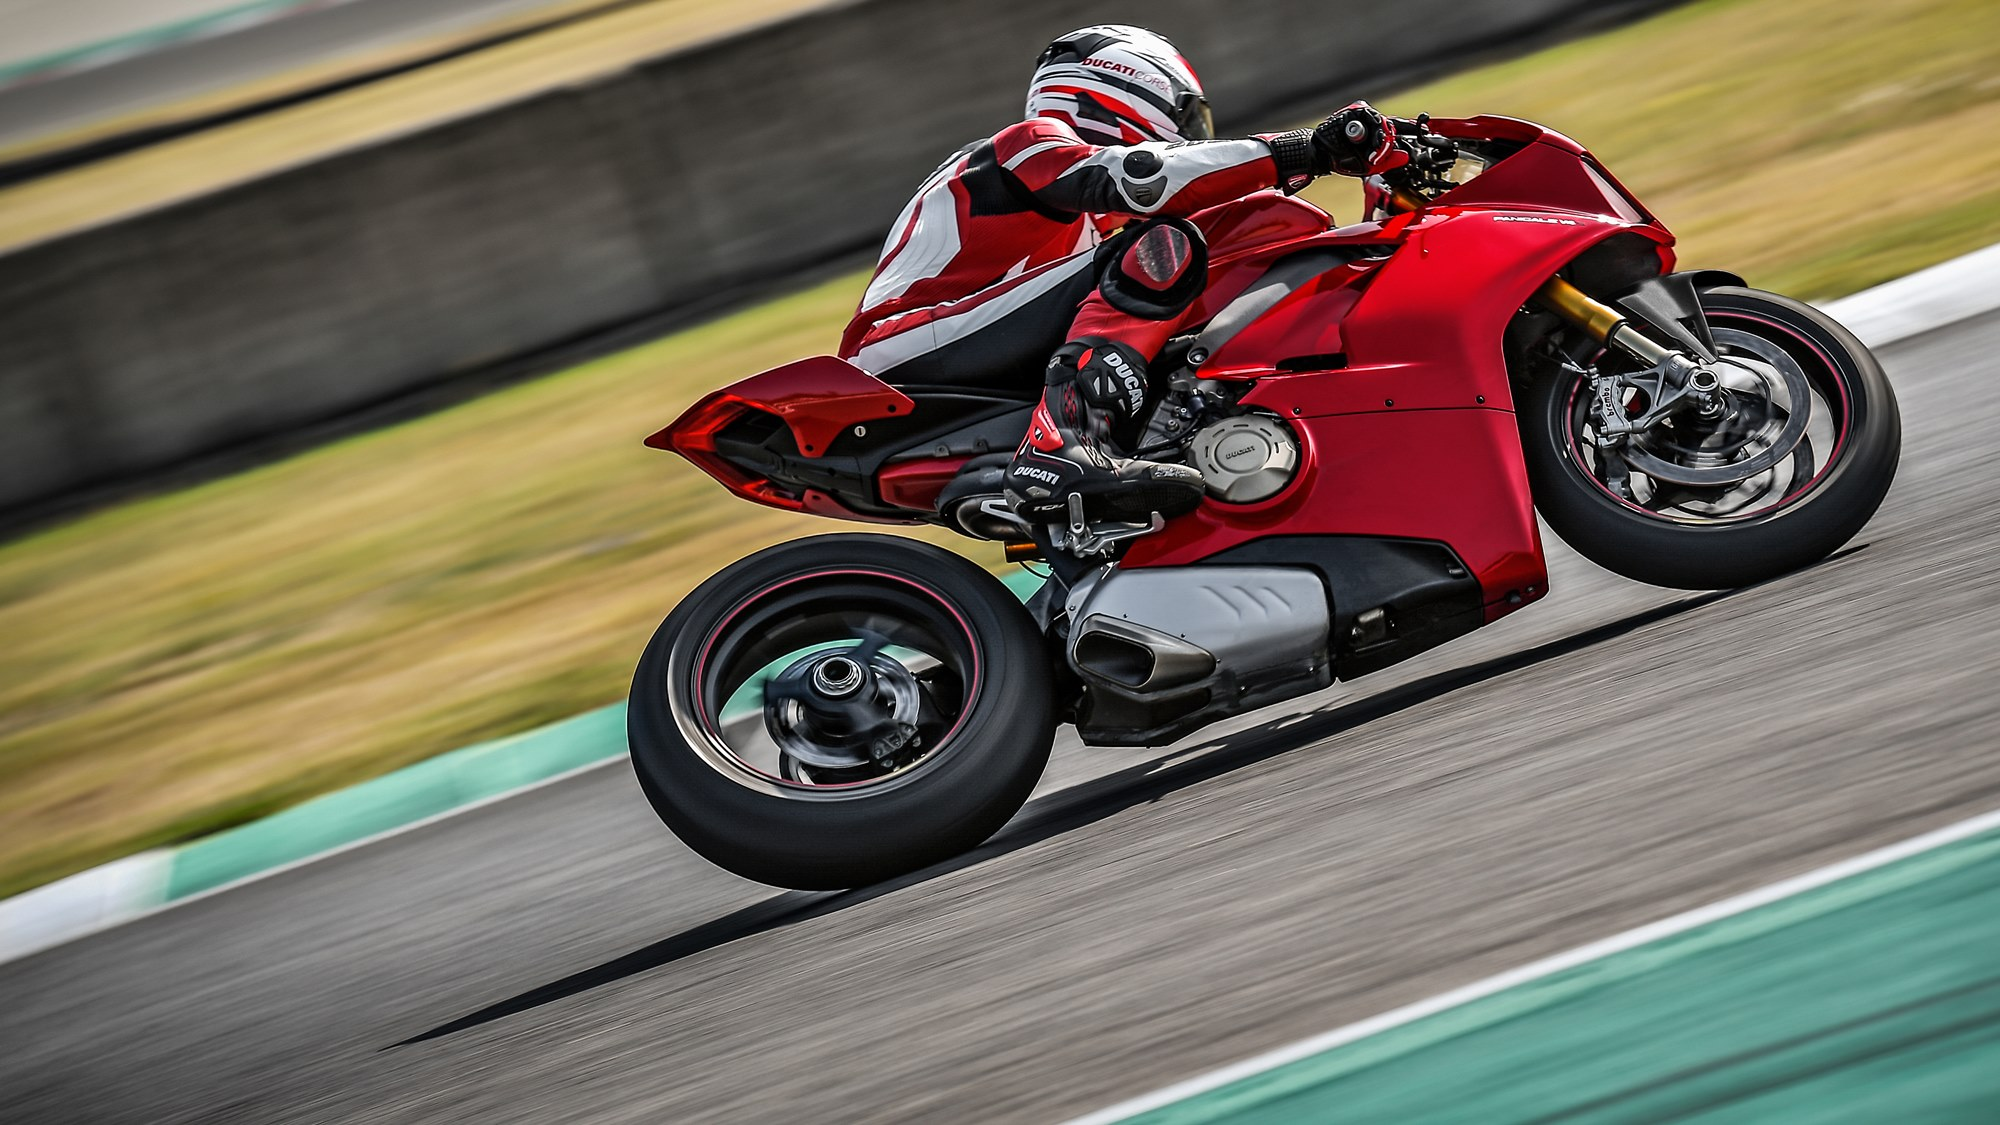 Ducati Panigale V4 images